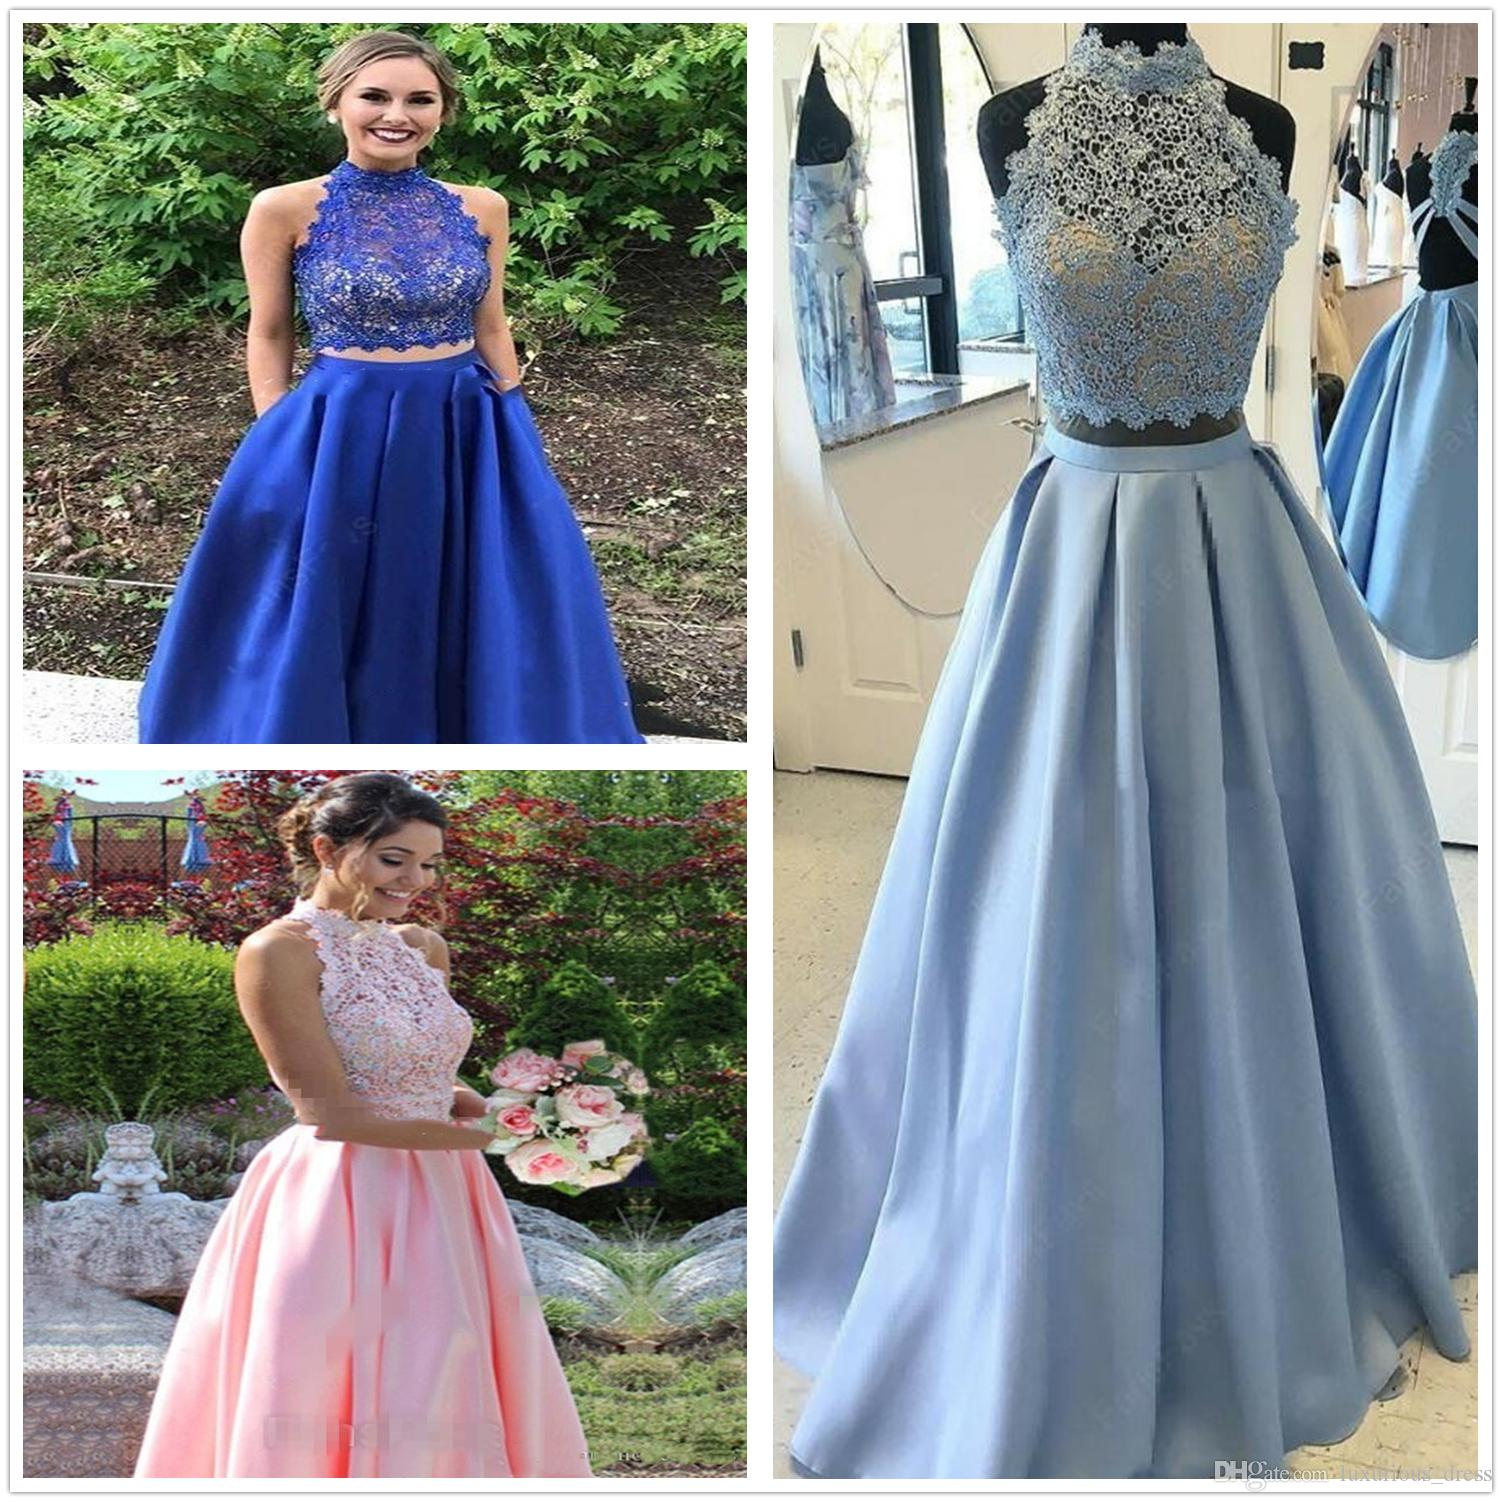 Jewel Top Beaded Graduation Dresses Long Puffy Sequin Crystal Floor Length Prom Gowns Couture Keyhole Back Dresses Evening Wear Real Party